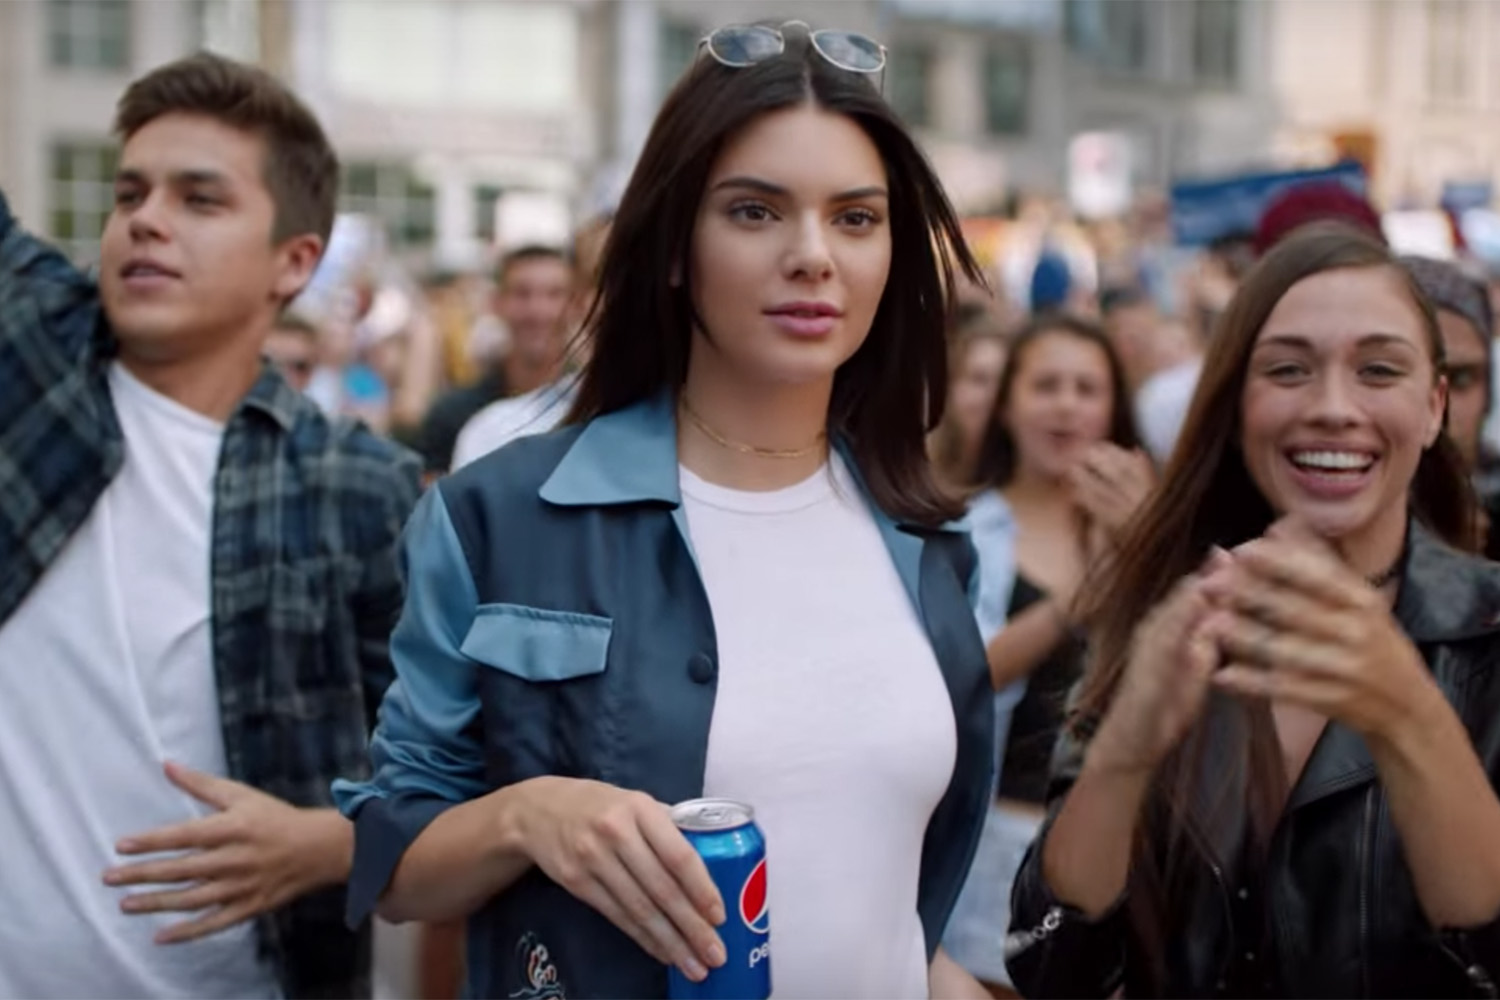 Model Kendall Jenner appears in a still from a controversial advertisement for Pepsi, which the company pulled after widespread criticism of the ad's content. (Pepsi)